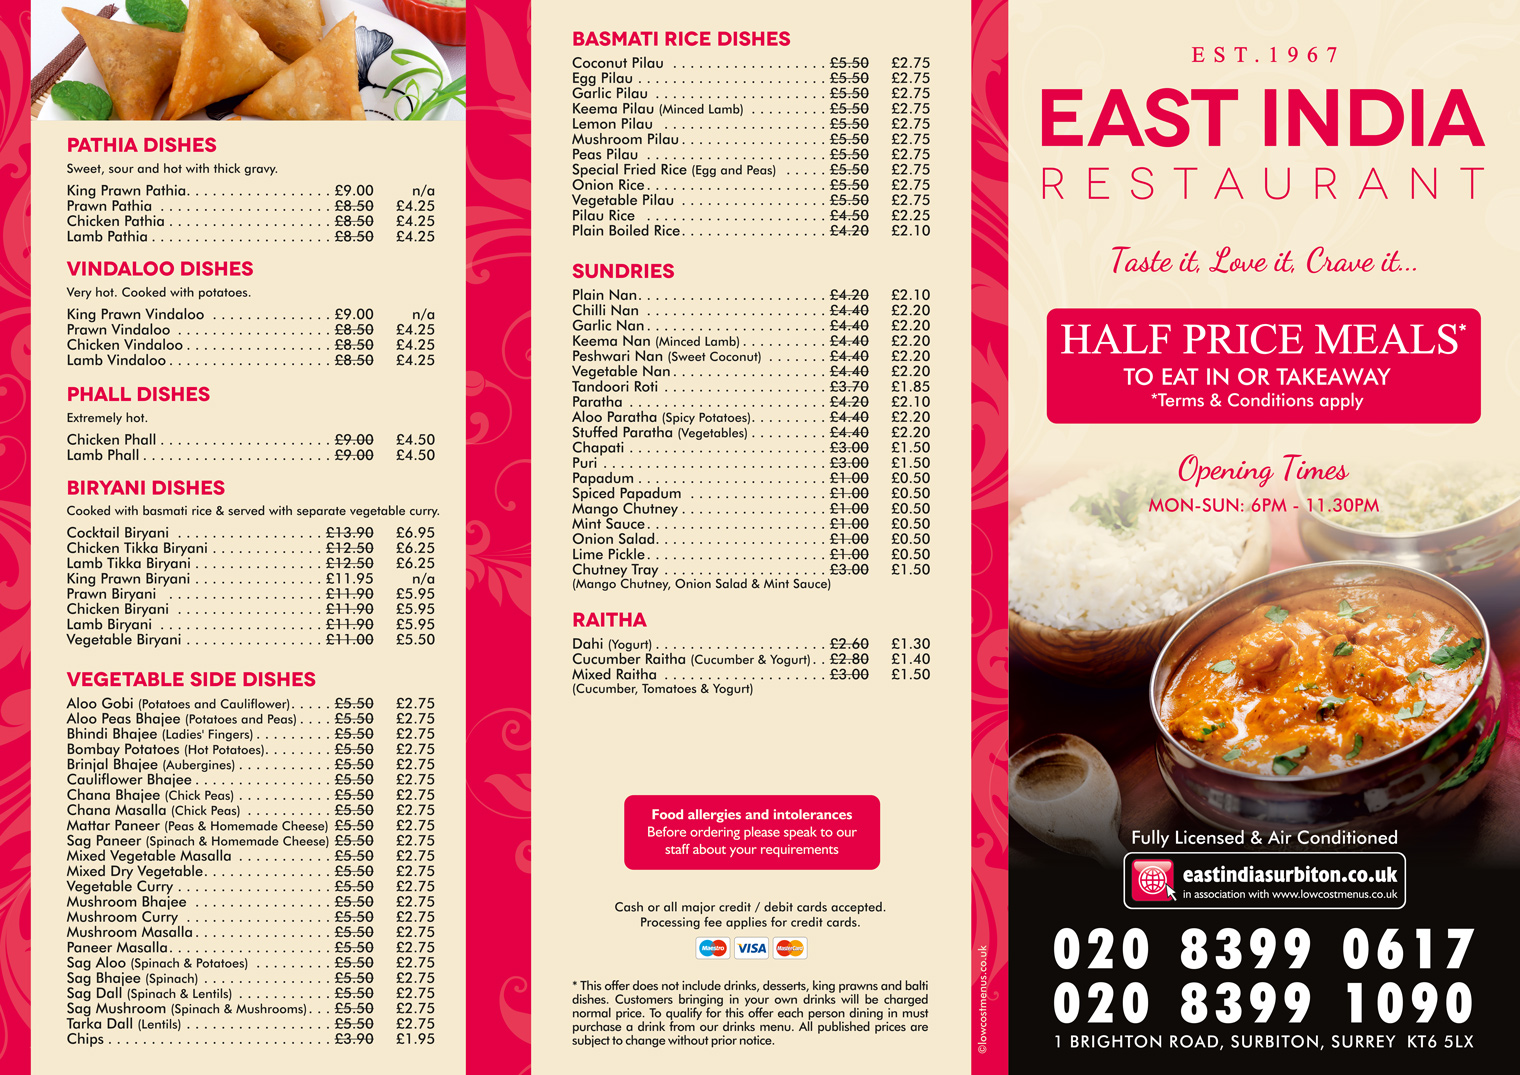 Takeaway Menu 2 - East India Restaurant – Surbiton KT6 5LX